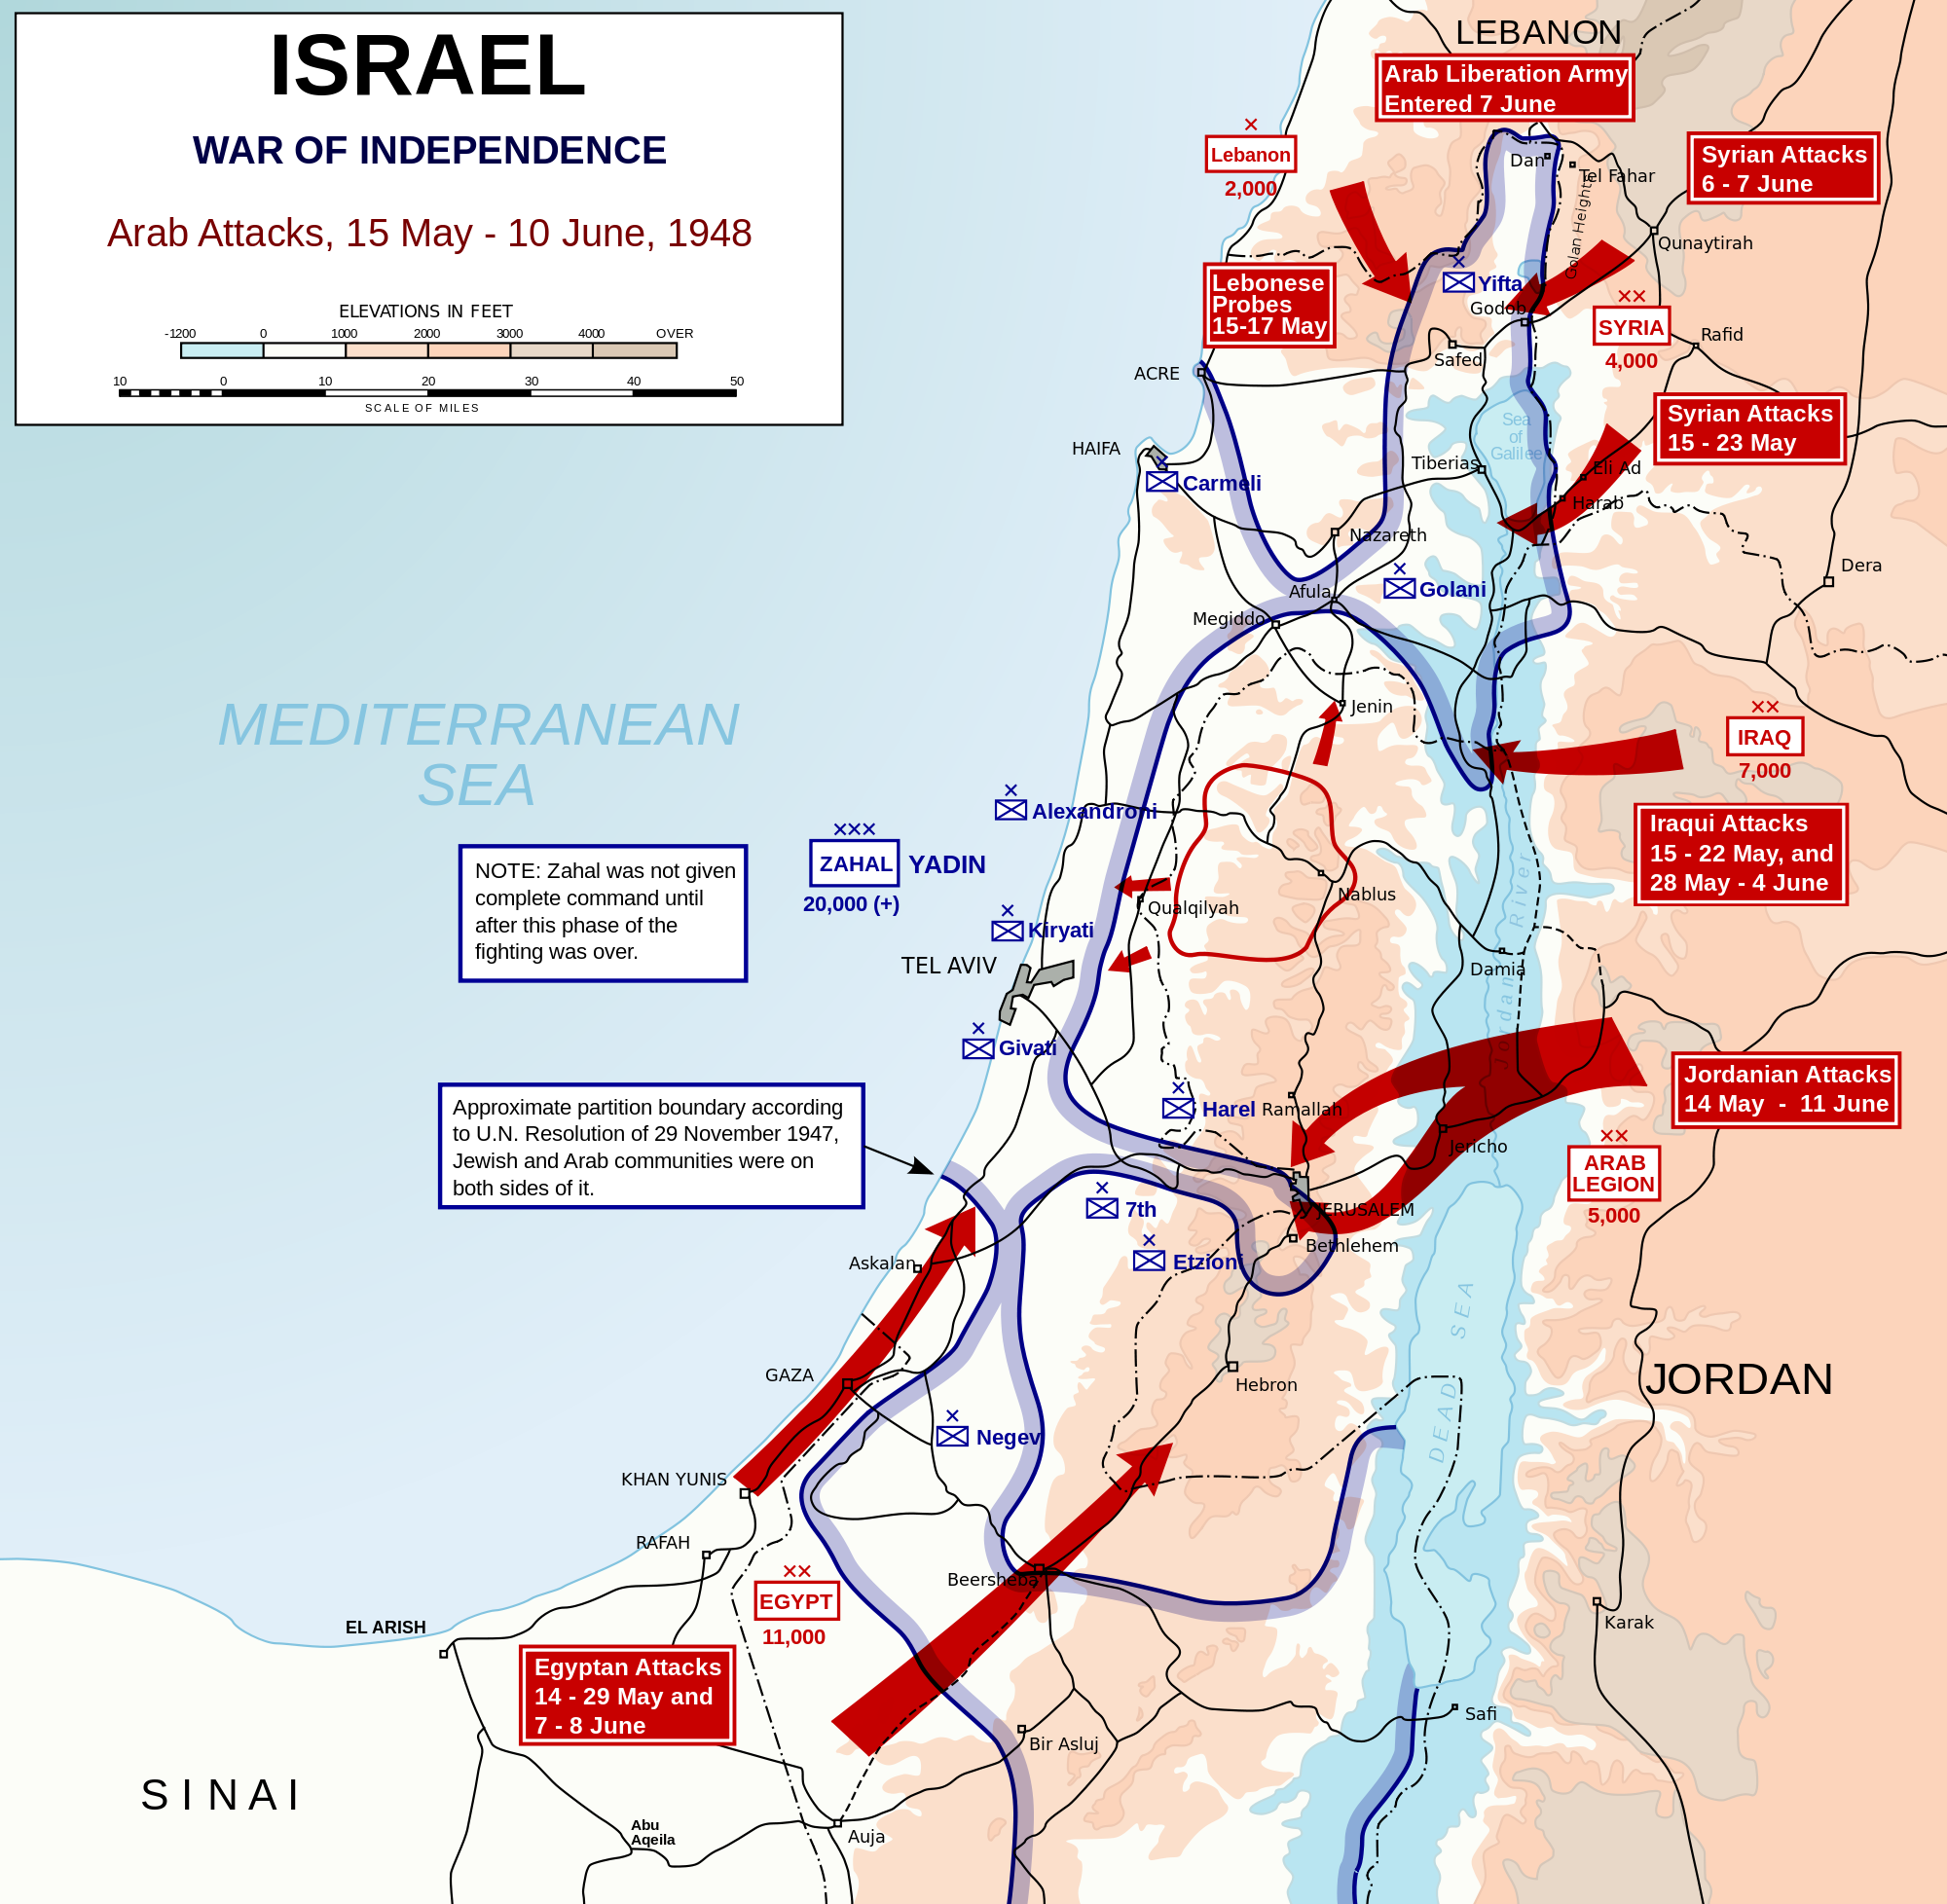 the 1948 arab israeli war as a key turning point in the political development of the middle east Following the declaration of the establishment of the state of israel on 14 may 1948, the arab league decided to intervene on behalf of palestinian arabs, marching their forces into former british palestine, beginning the main phase of the 1948 arab-israeli war.